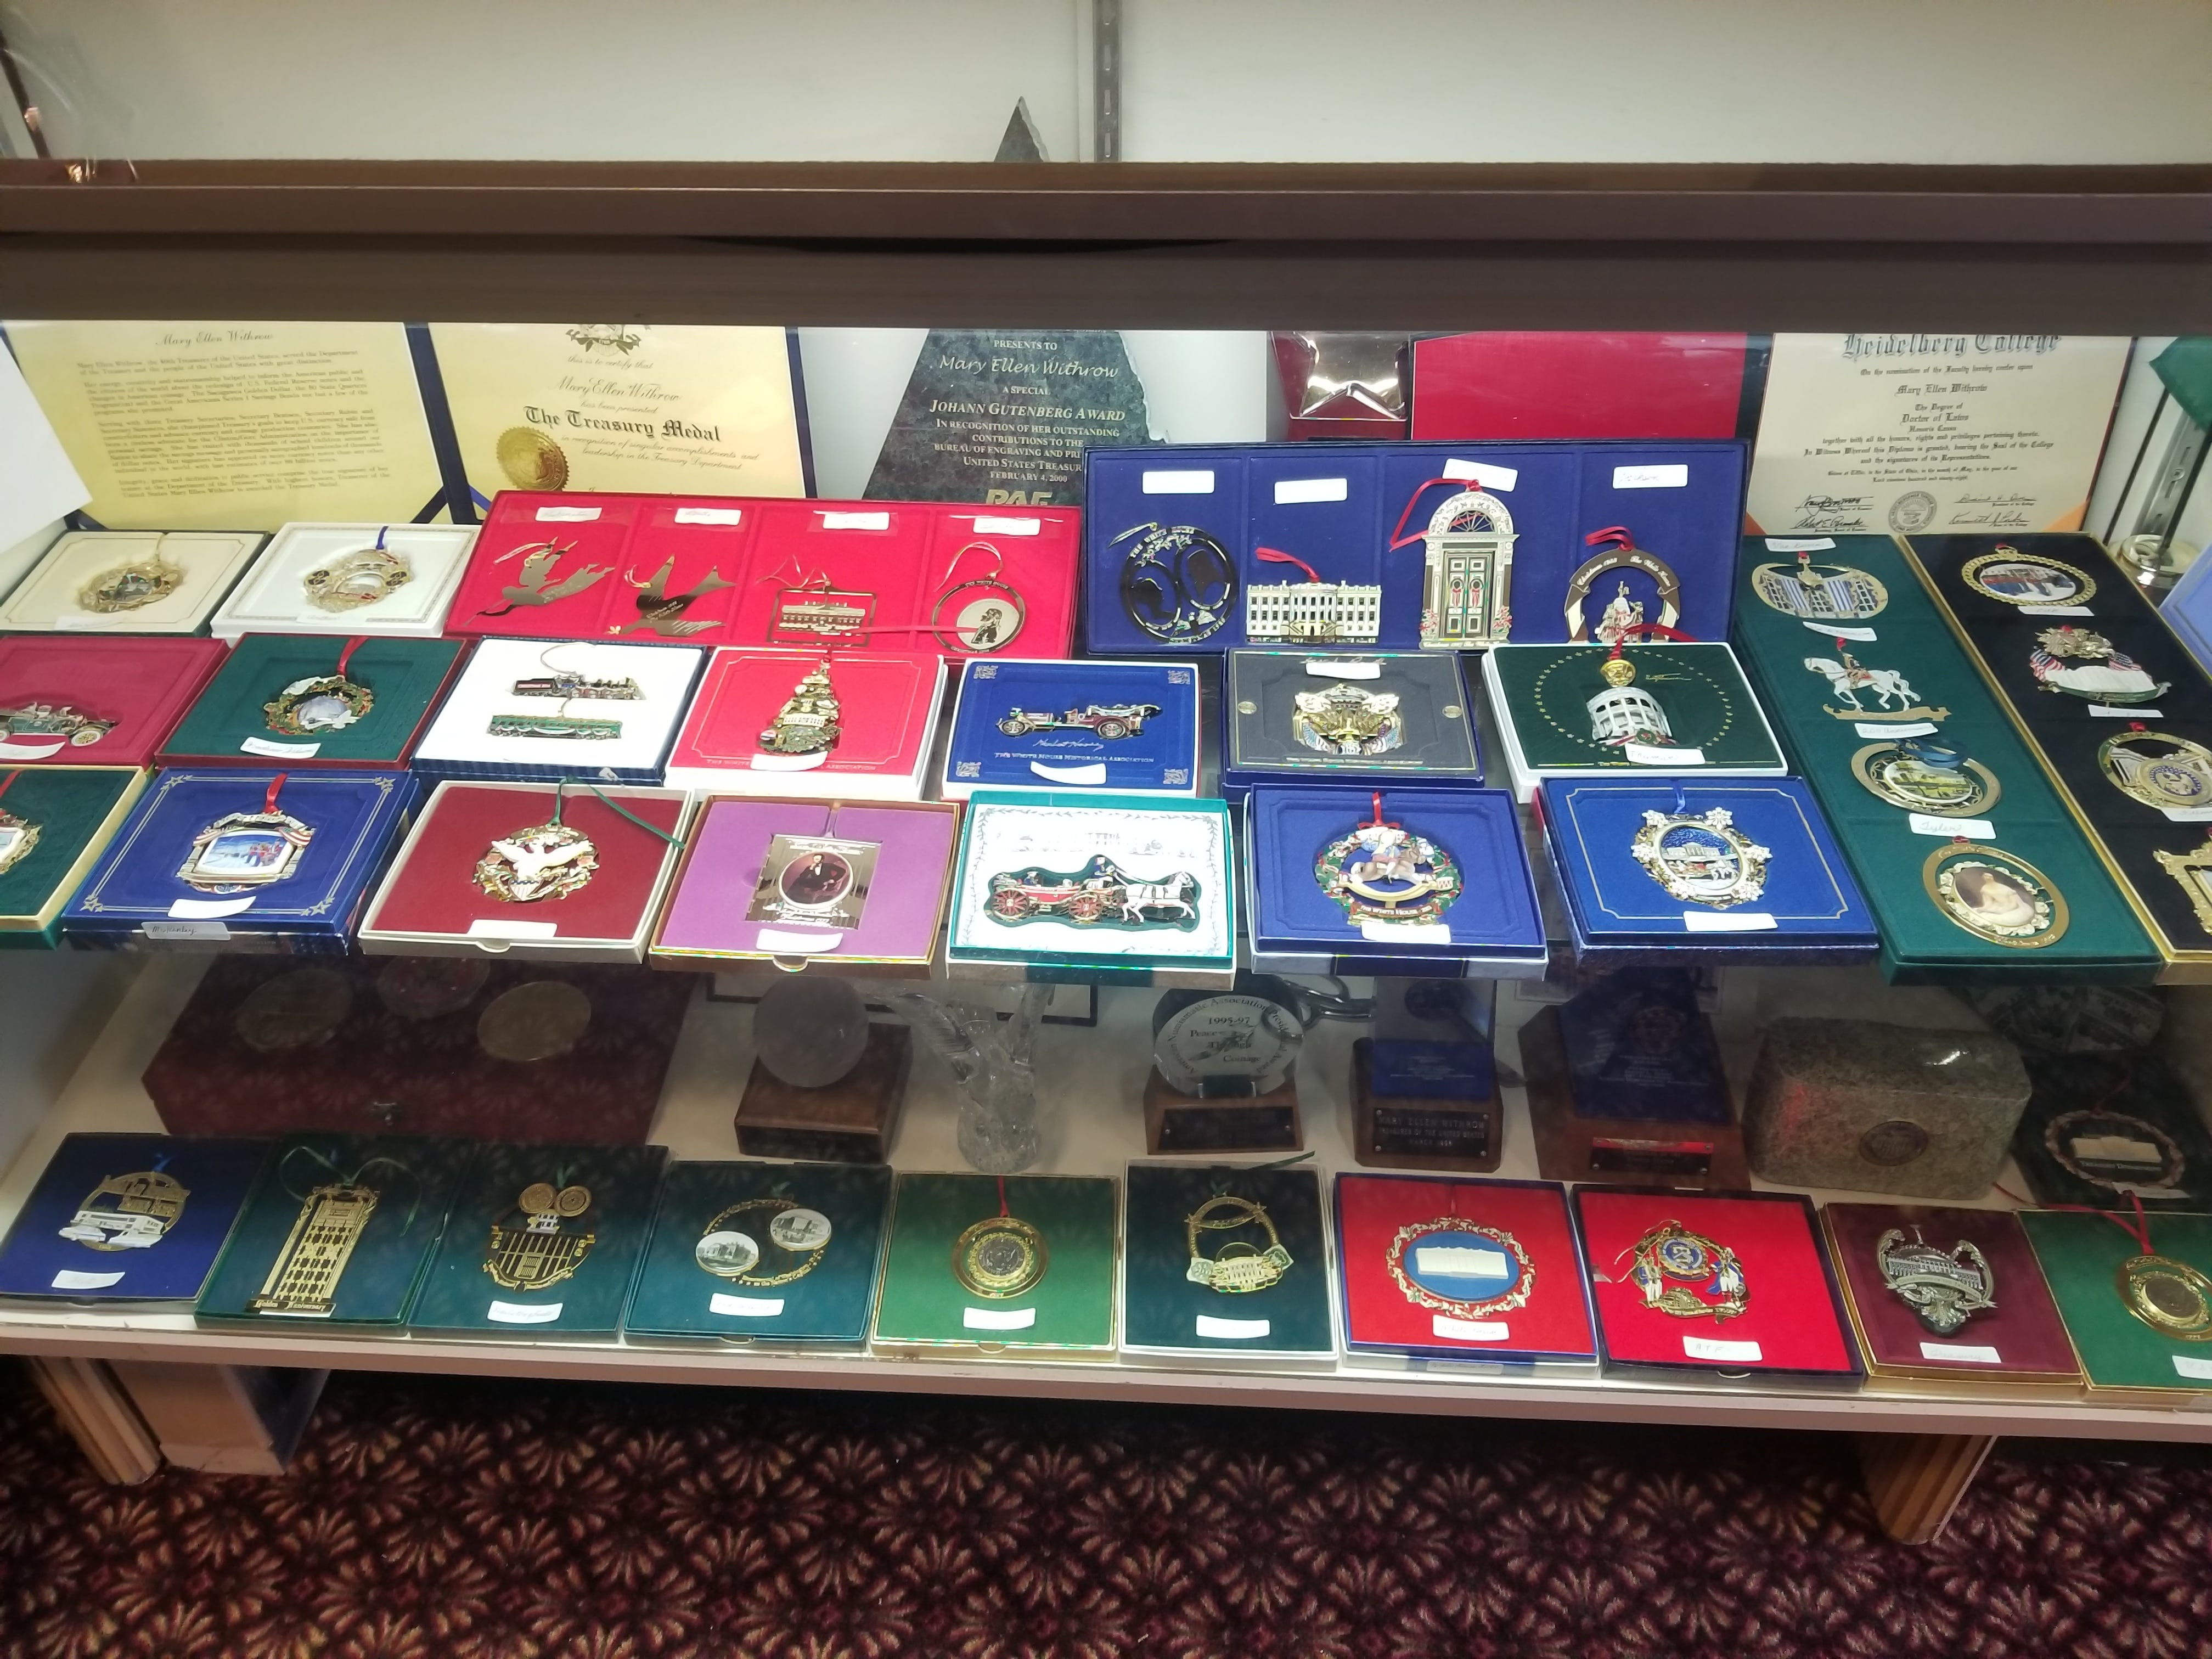 More than three decades of US Treasury Christmas ornaments are on display at the Mary Ellen Withrow museum at Primrose of Marion. The museum is open to the public by appointment.